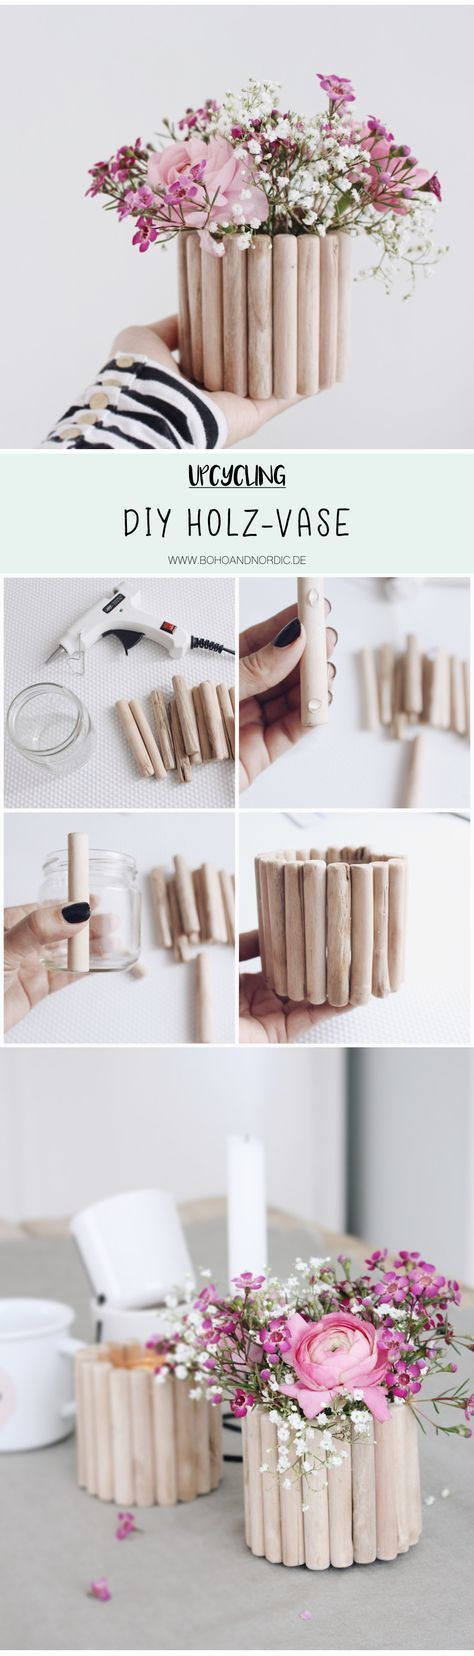 Upcycling made easy: make a DIY wooden vase yourself